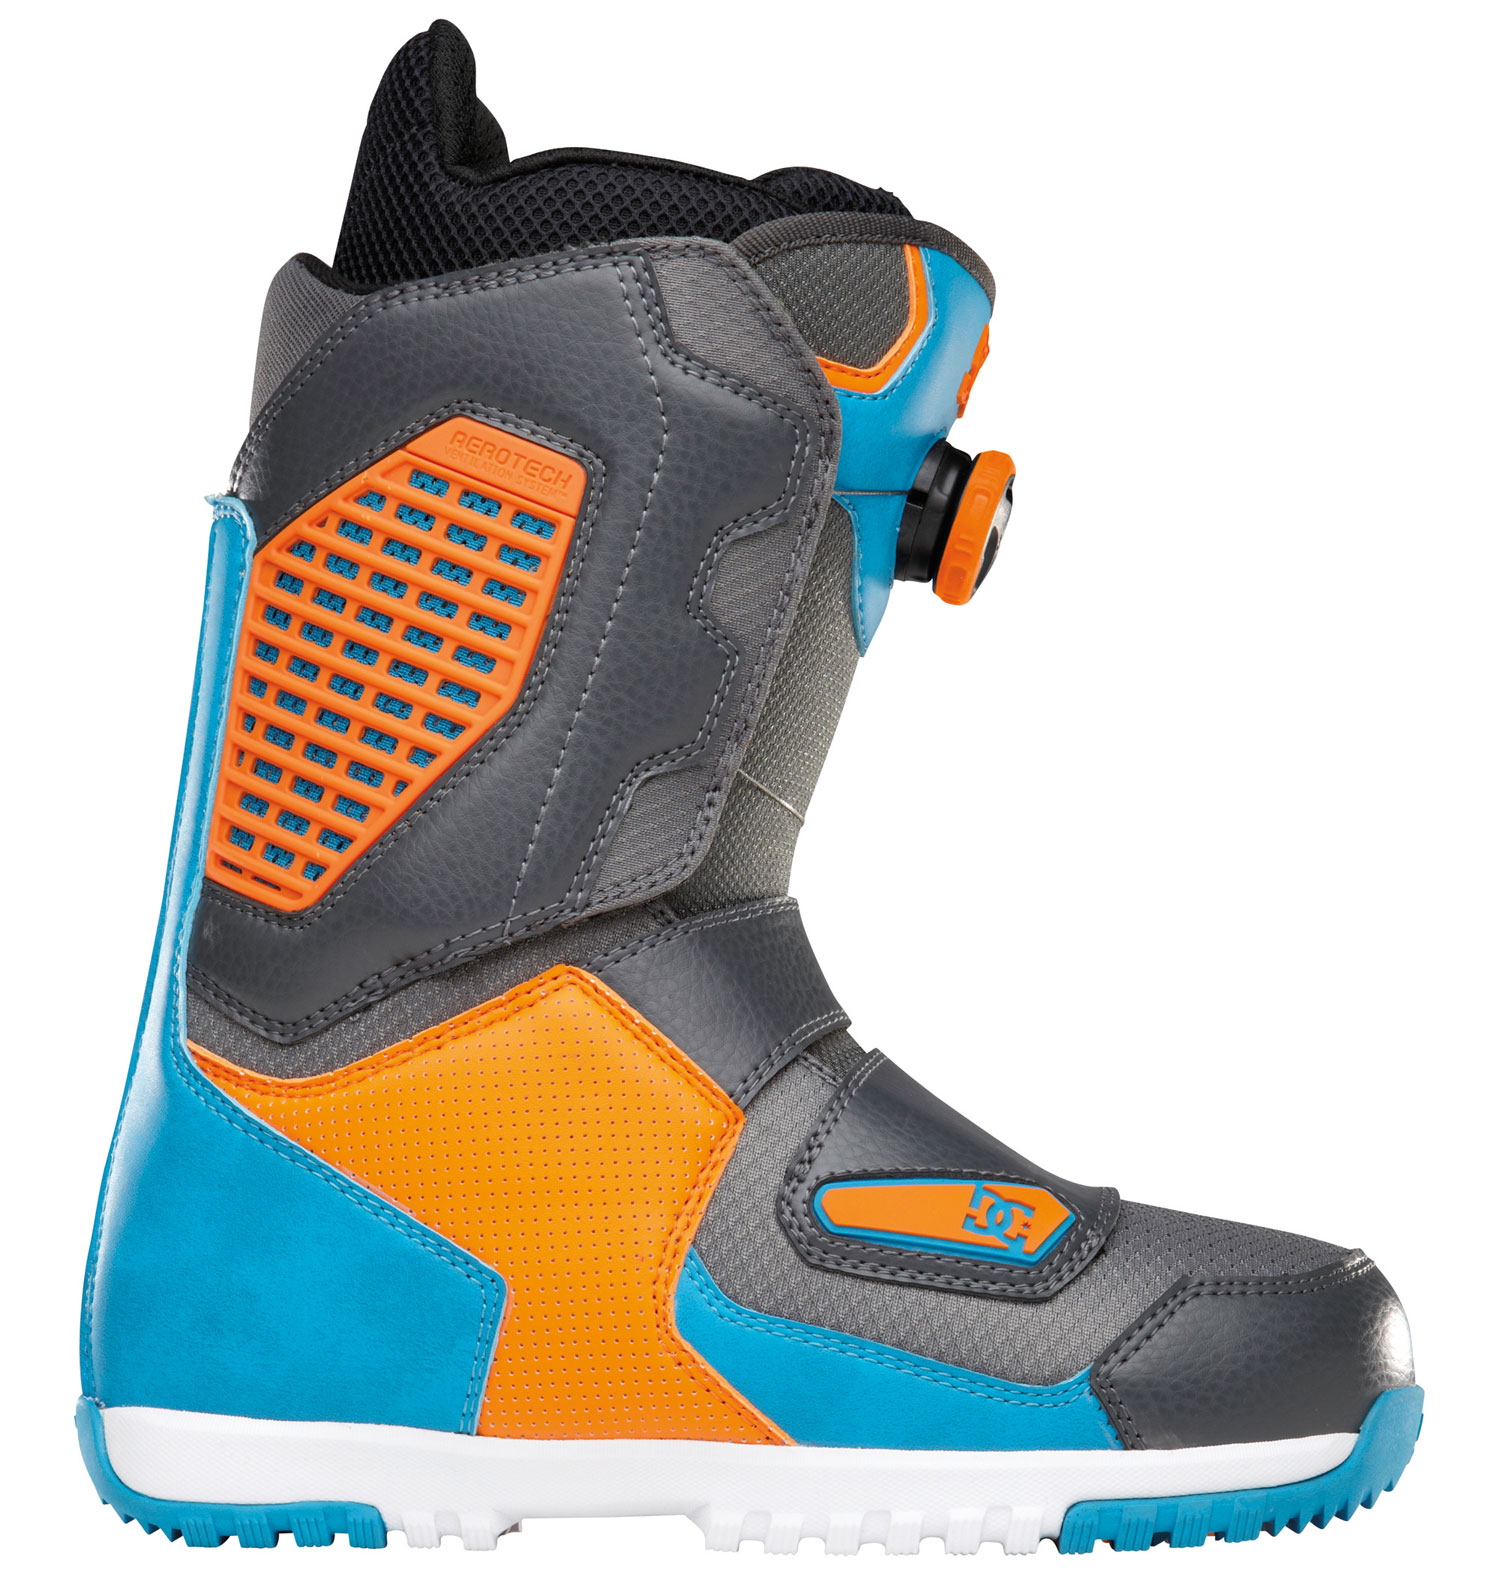 "Snowboard ""Court is in session and this boot is in charge!""- andrew geevesKey Features of the DC Judge Snowboard Boots: Flex: 8 Aerotech Ventilation System: molded vents in the shell and liner work in unison to release unwanted moisture away from the riders foot. this proprietary system will keep your feet warm and dry and prevent bacteria build up. Constrictor Hybrid System 3D Tongue Articulation Molded backstay Internal Ankle Harness UniLite™: DC's proprietary outsole technology, UnILIte provides traction, durability, dampening, and cushioning all while drastically reducing weight. UnILIte soles feature distinct traction patterns for ascending, descending, and skating around with our Push Zone tread pattern. the snow-shedding traction designs also prevent snow from building up and clogging bindings. Boa® Coiler Alpha Liner: multi density zones, neoprene ankle strap, aerotech system, aegis, full grain leather collar top on status & terrain models, anatomical j-bars - $209.95"